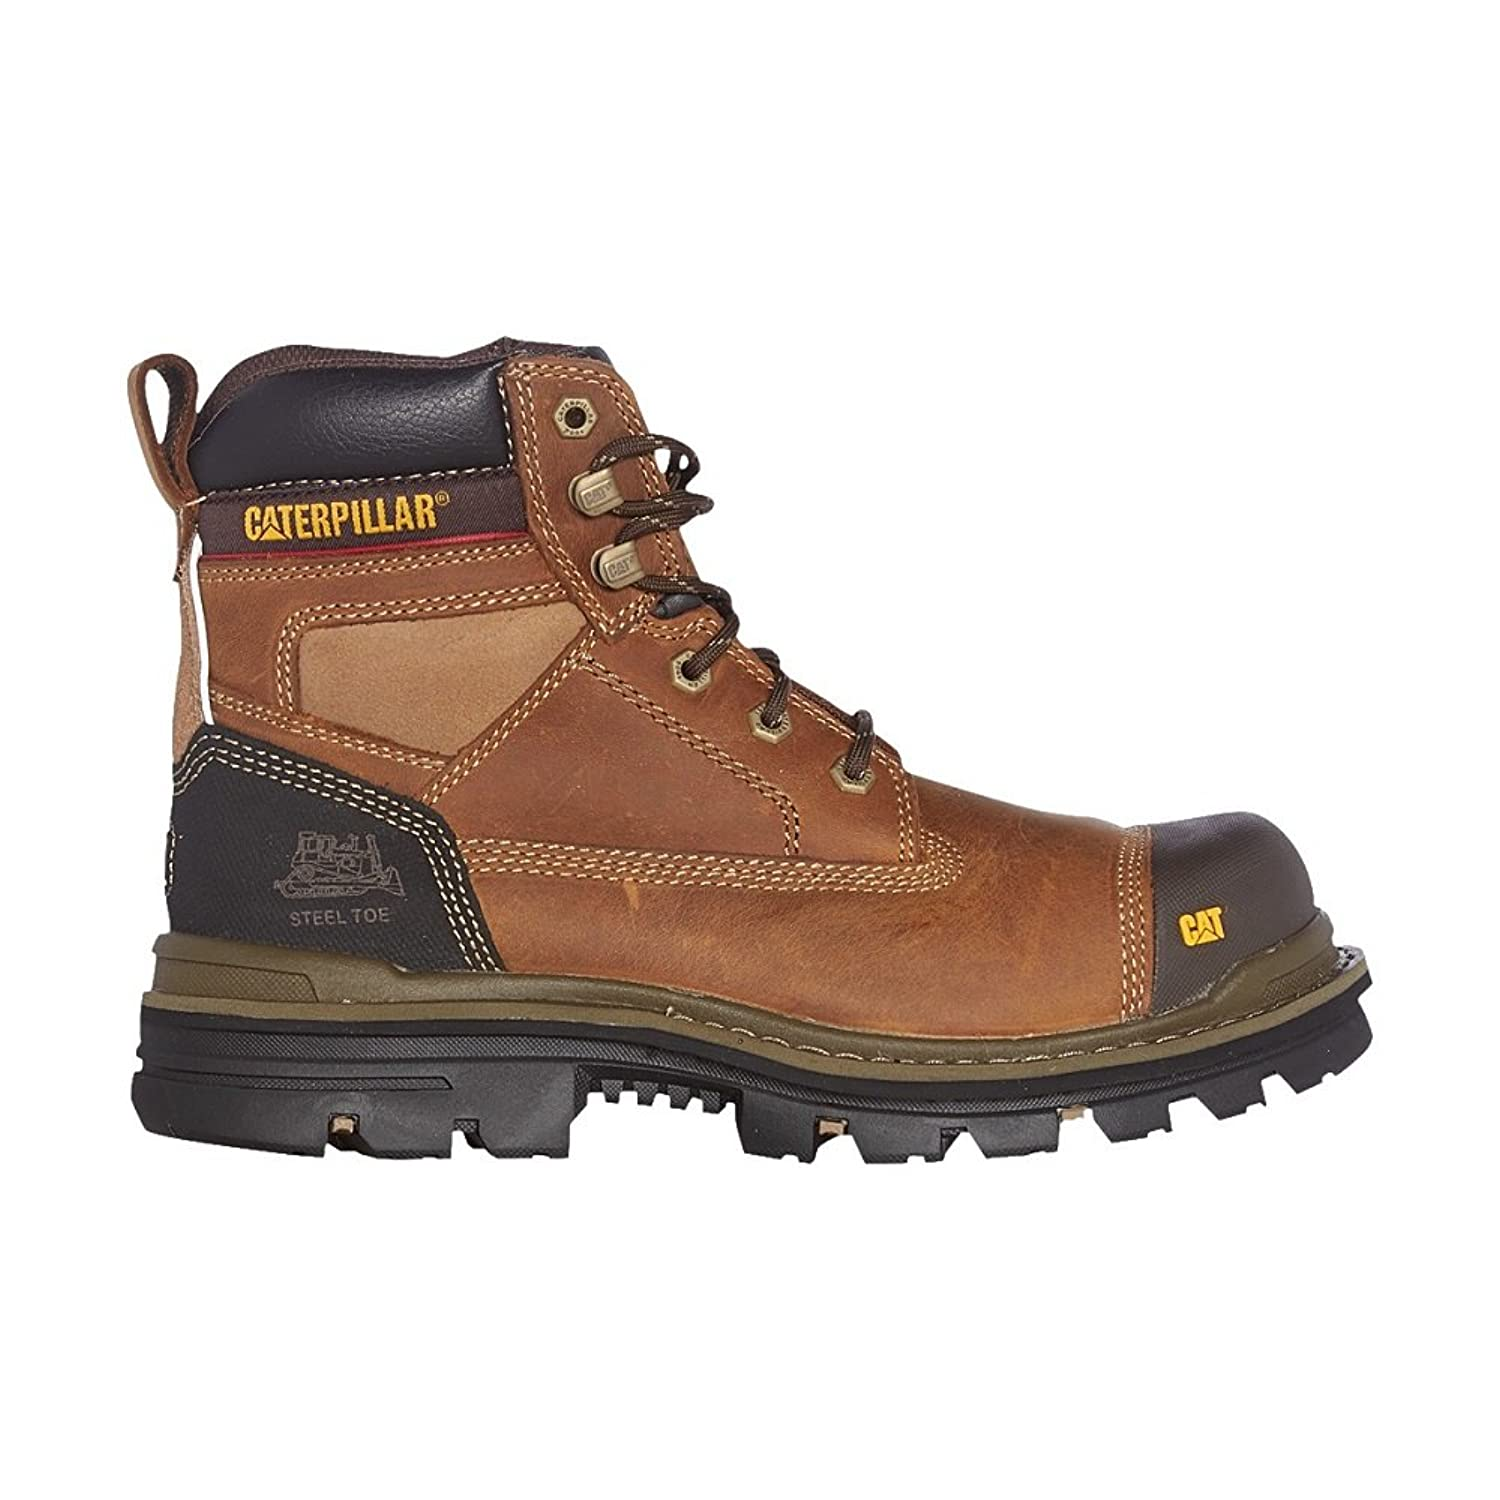 Caterpillar Gravel 6 S3 Mens Safety Shoes Amazoncouk Shoes Bags